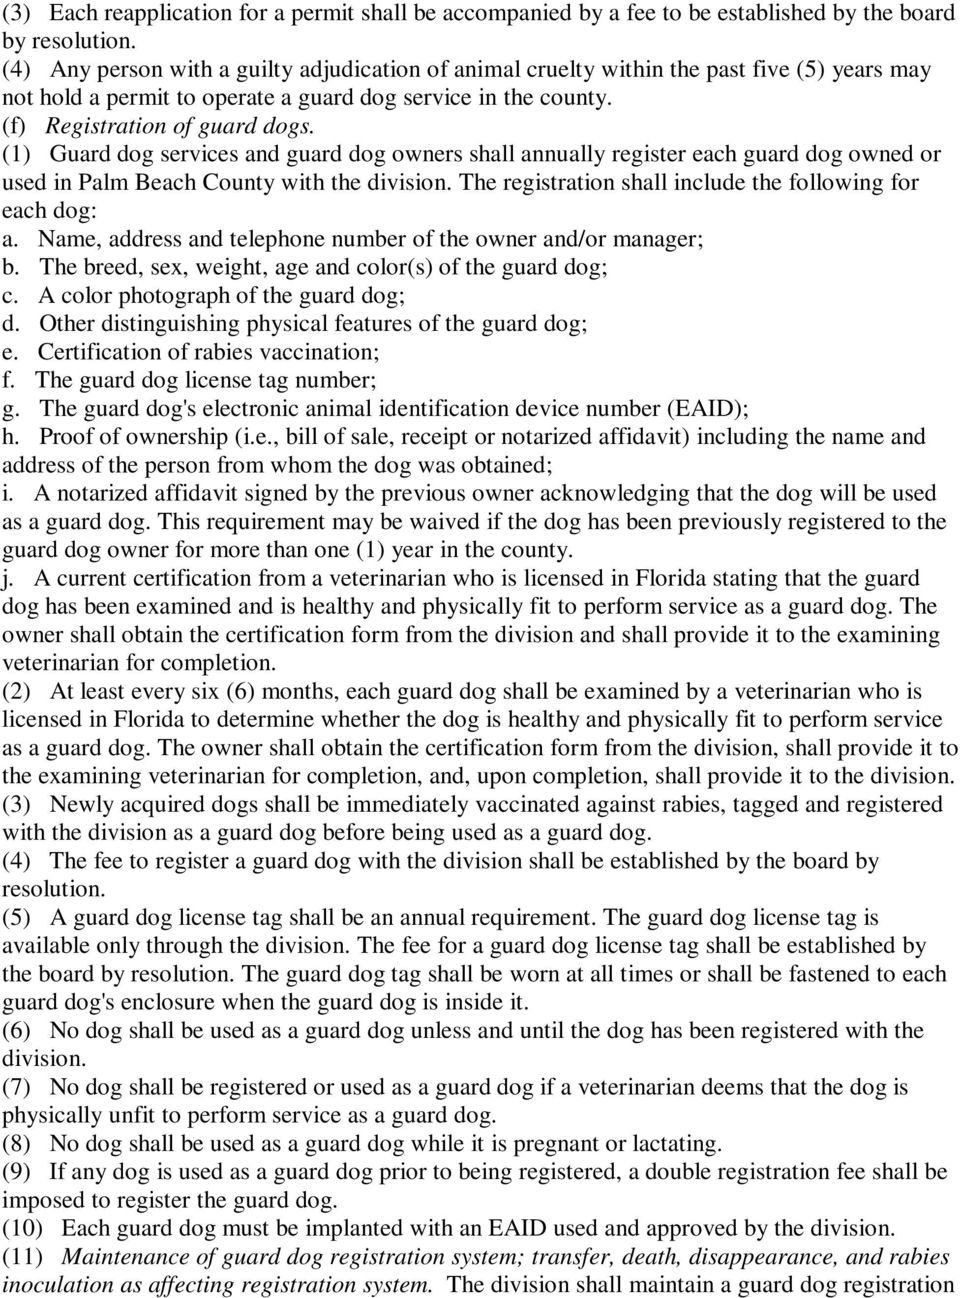 (1) Guard dog services and guard dog owners shall annually register each guard dog owned or used in Palm Beach County with the division. The registration shall include the following for each dog: a.